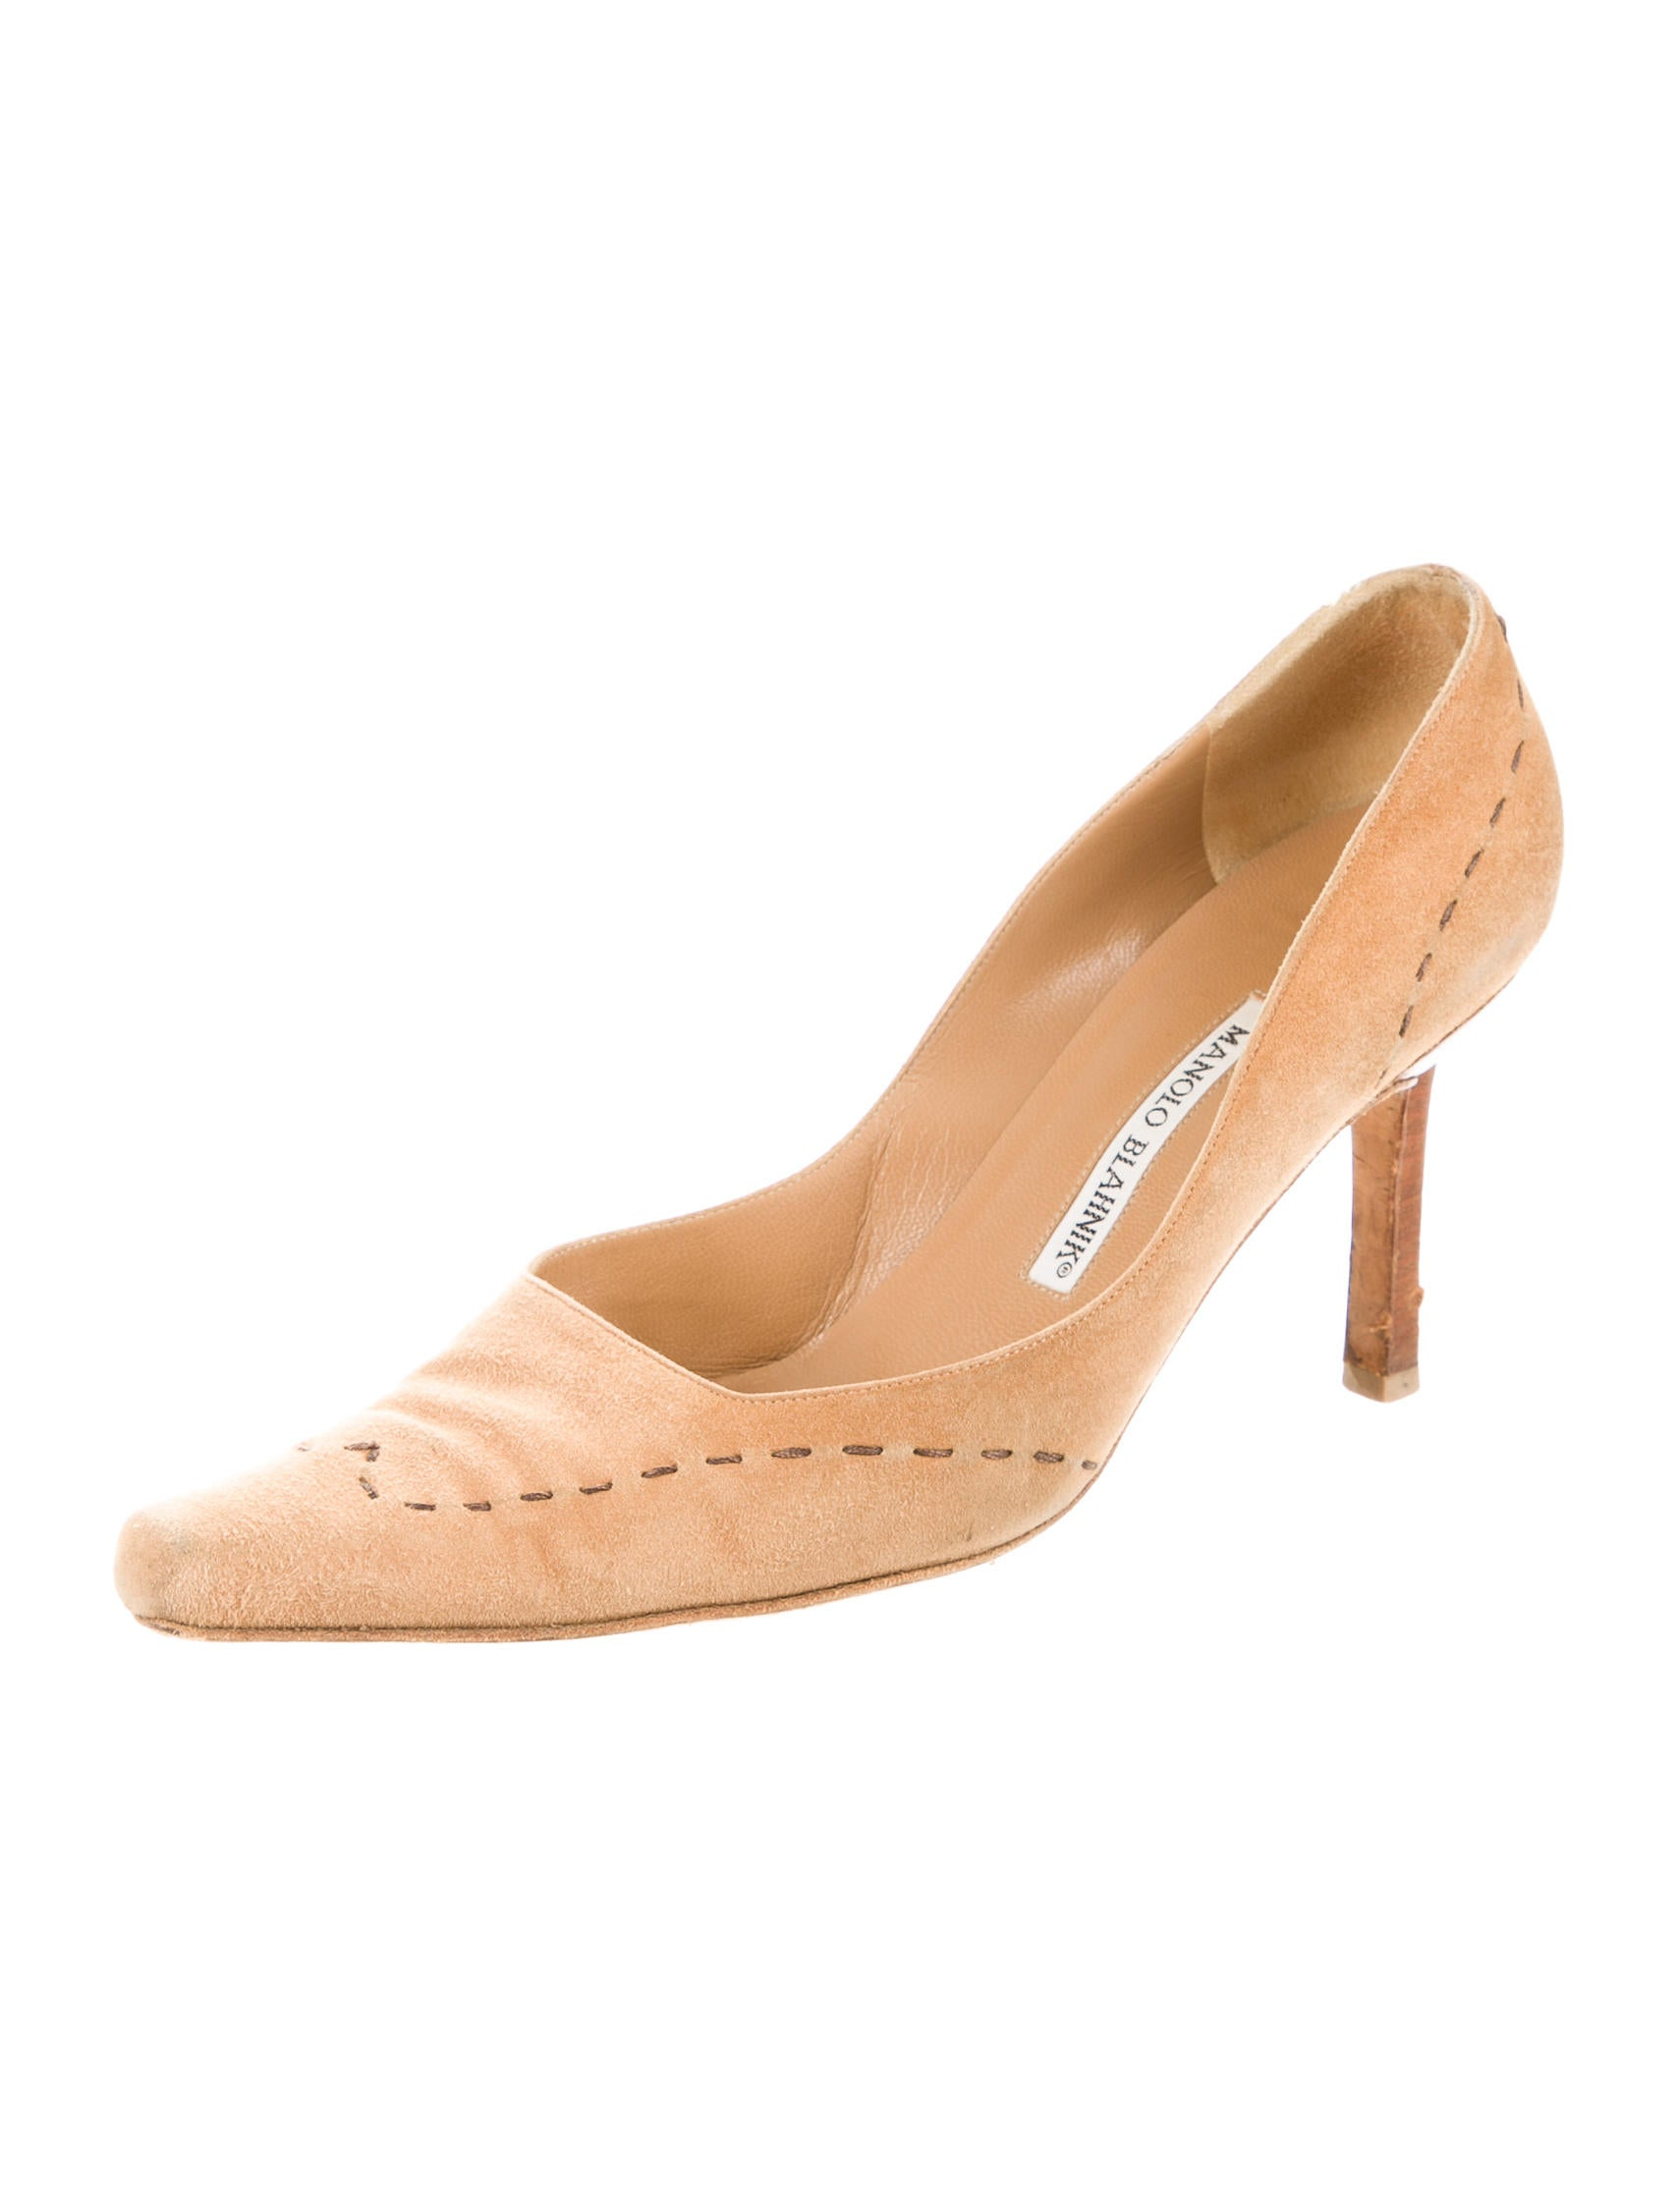 Manolo blahnik suede pointed toe pumps shoes moo54118 for Shoes by manolo blahnik